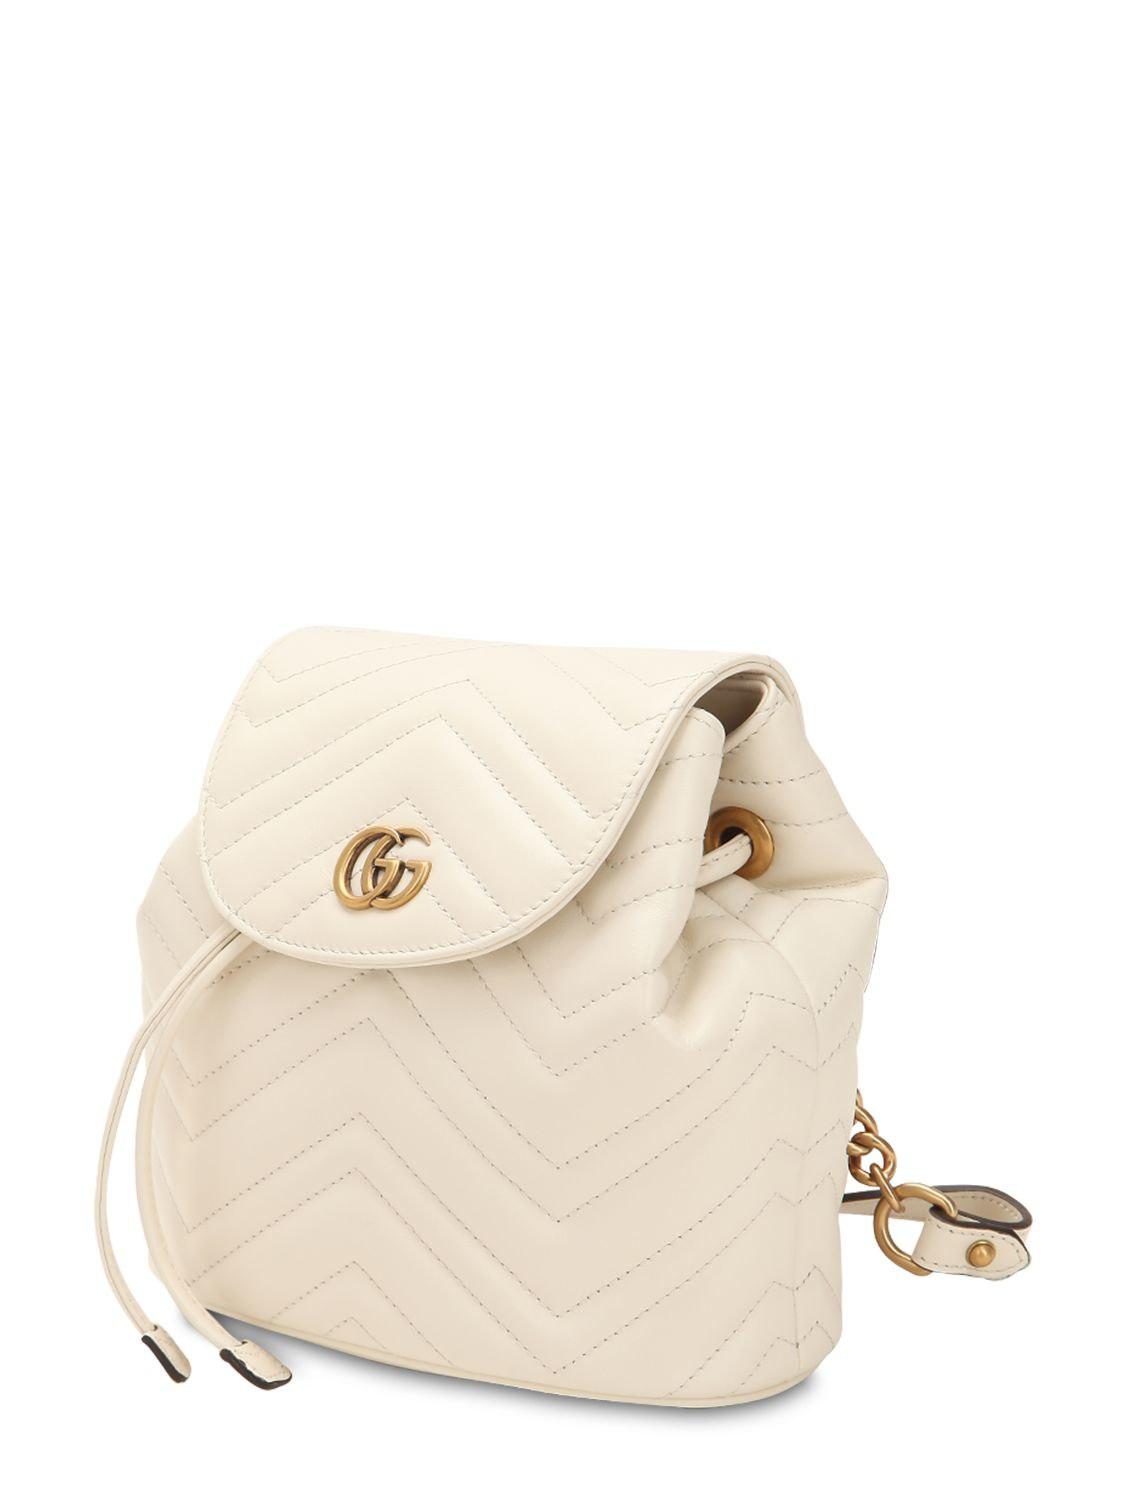 f0840b424444 Gucci - White Mini Gg Marmont Leather Backpack - Lyst. View fullscreen